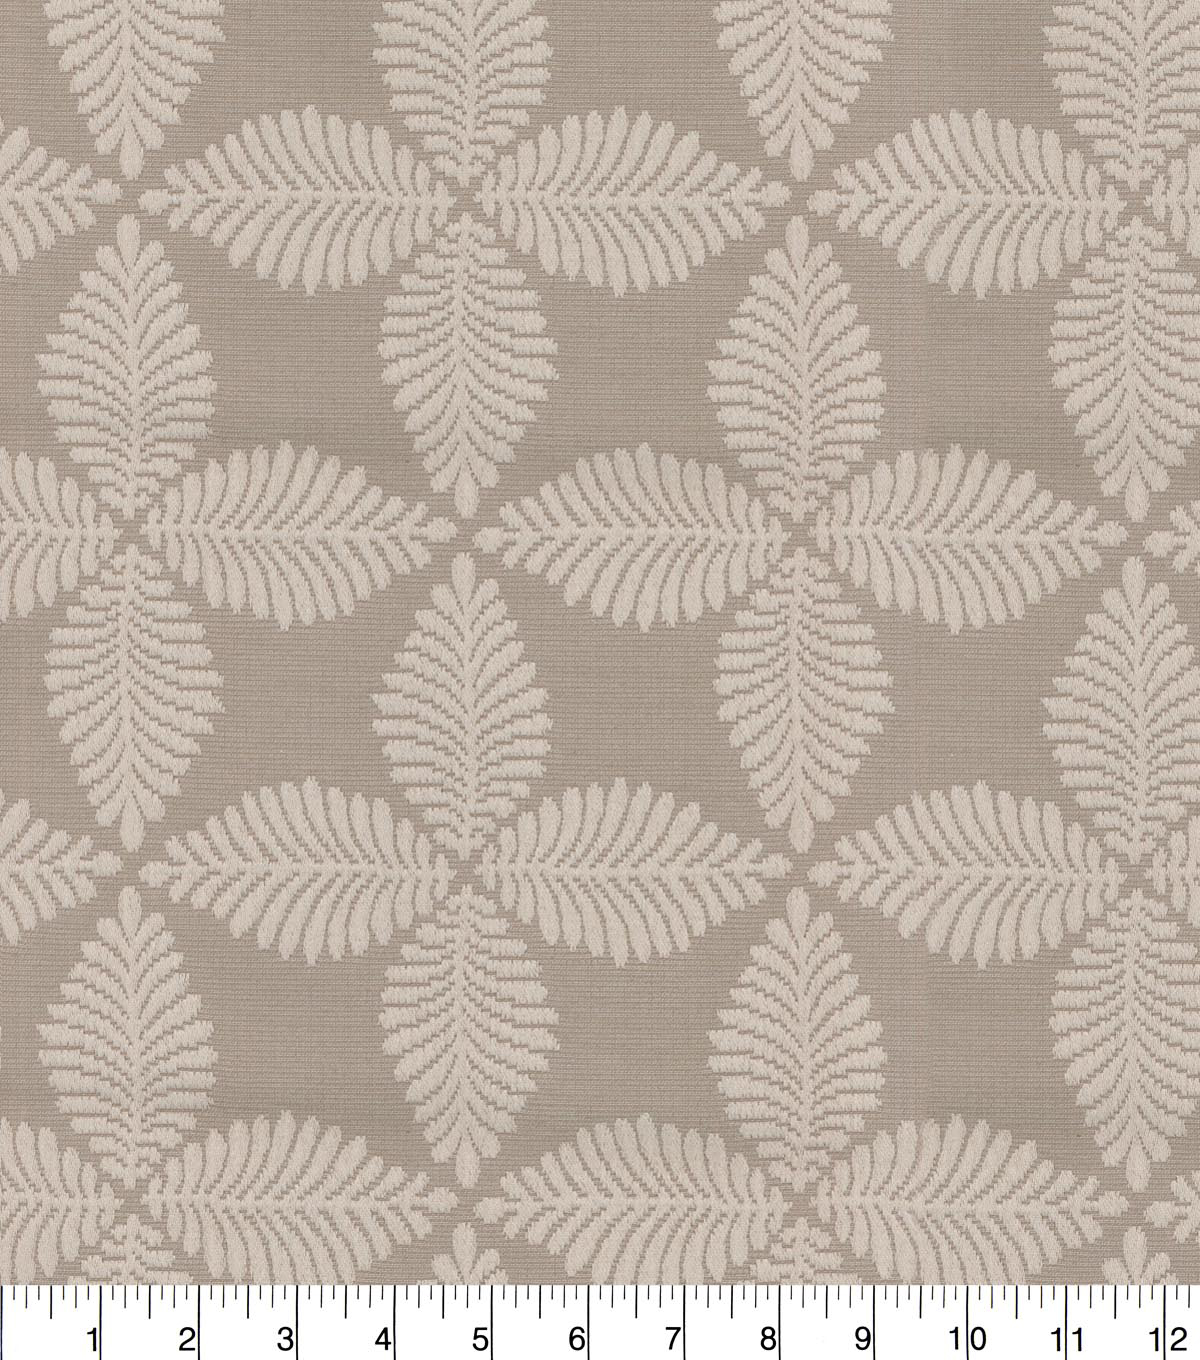 Home Decor 8\u0022x8\u0022 Fabric Swatch-Tommy Bahama Overleaf Mushroom